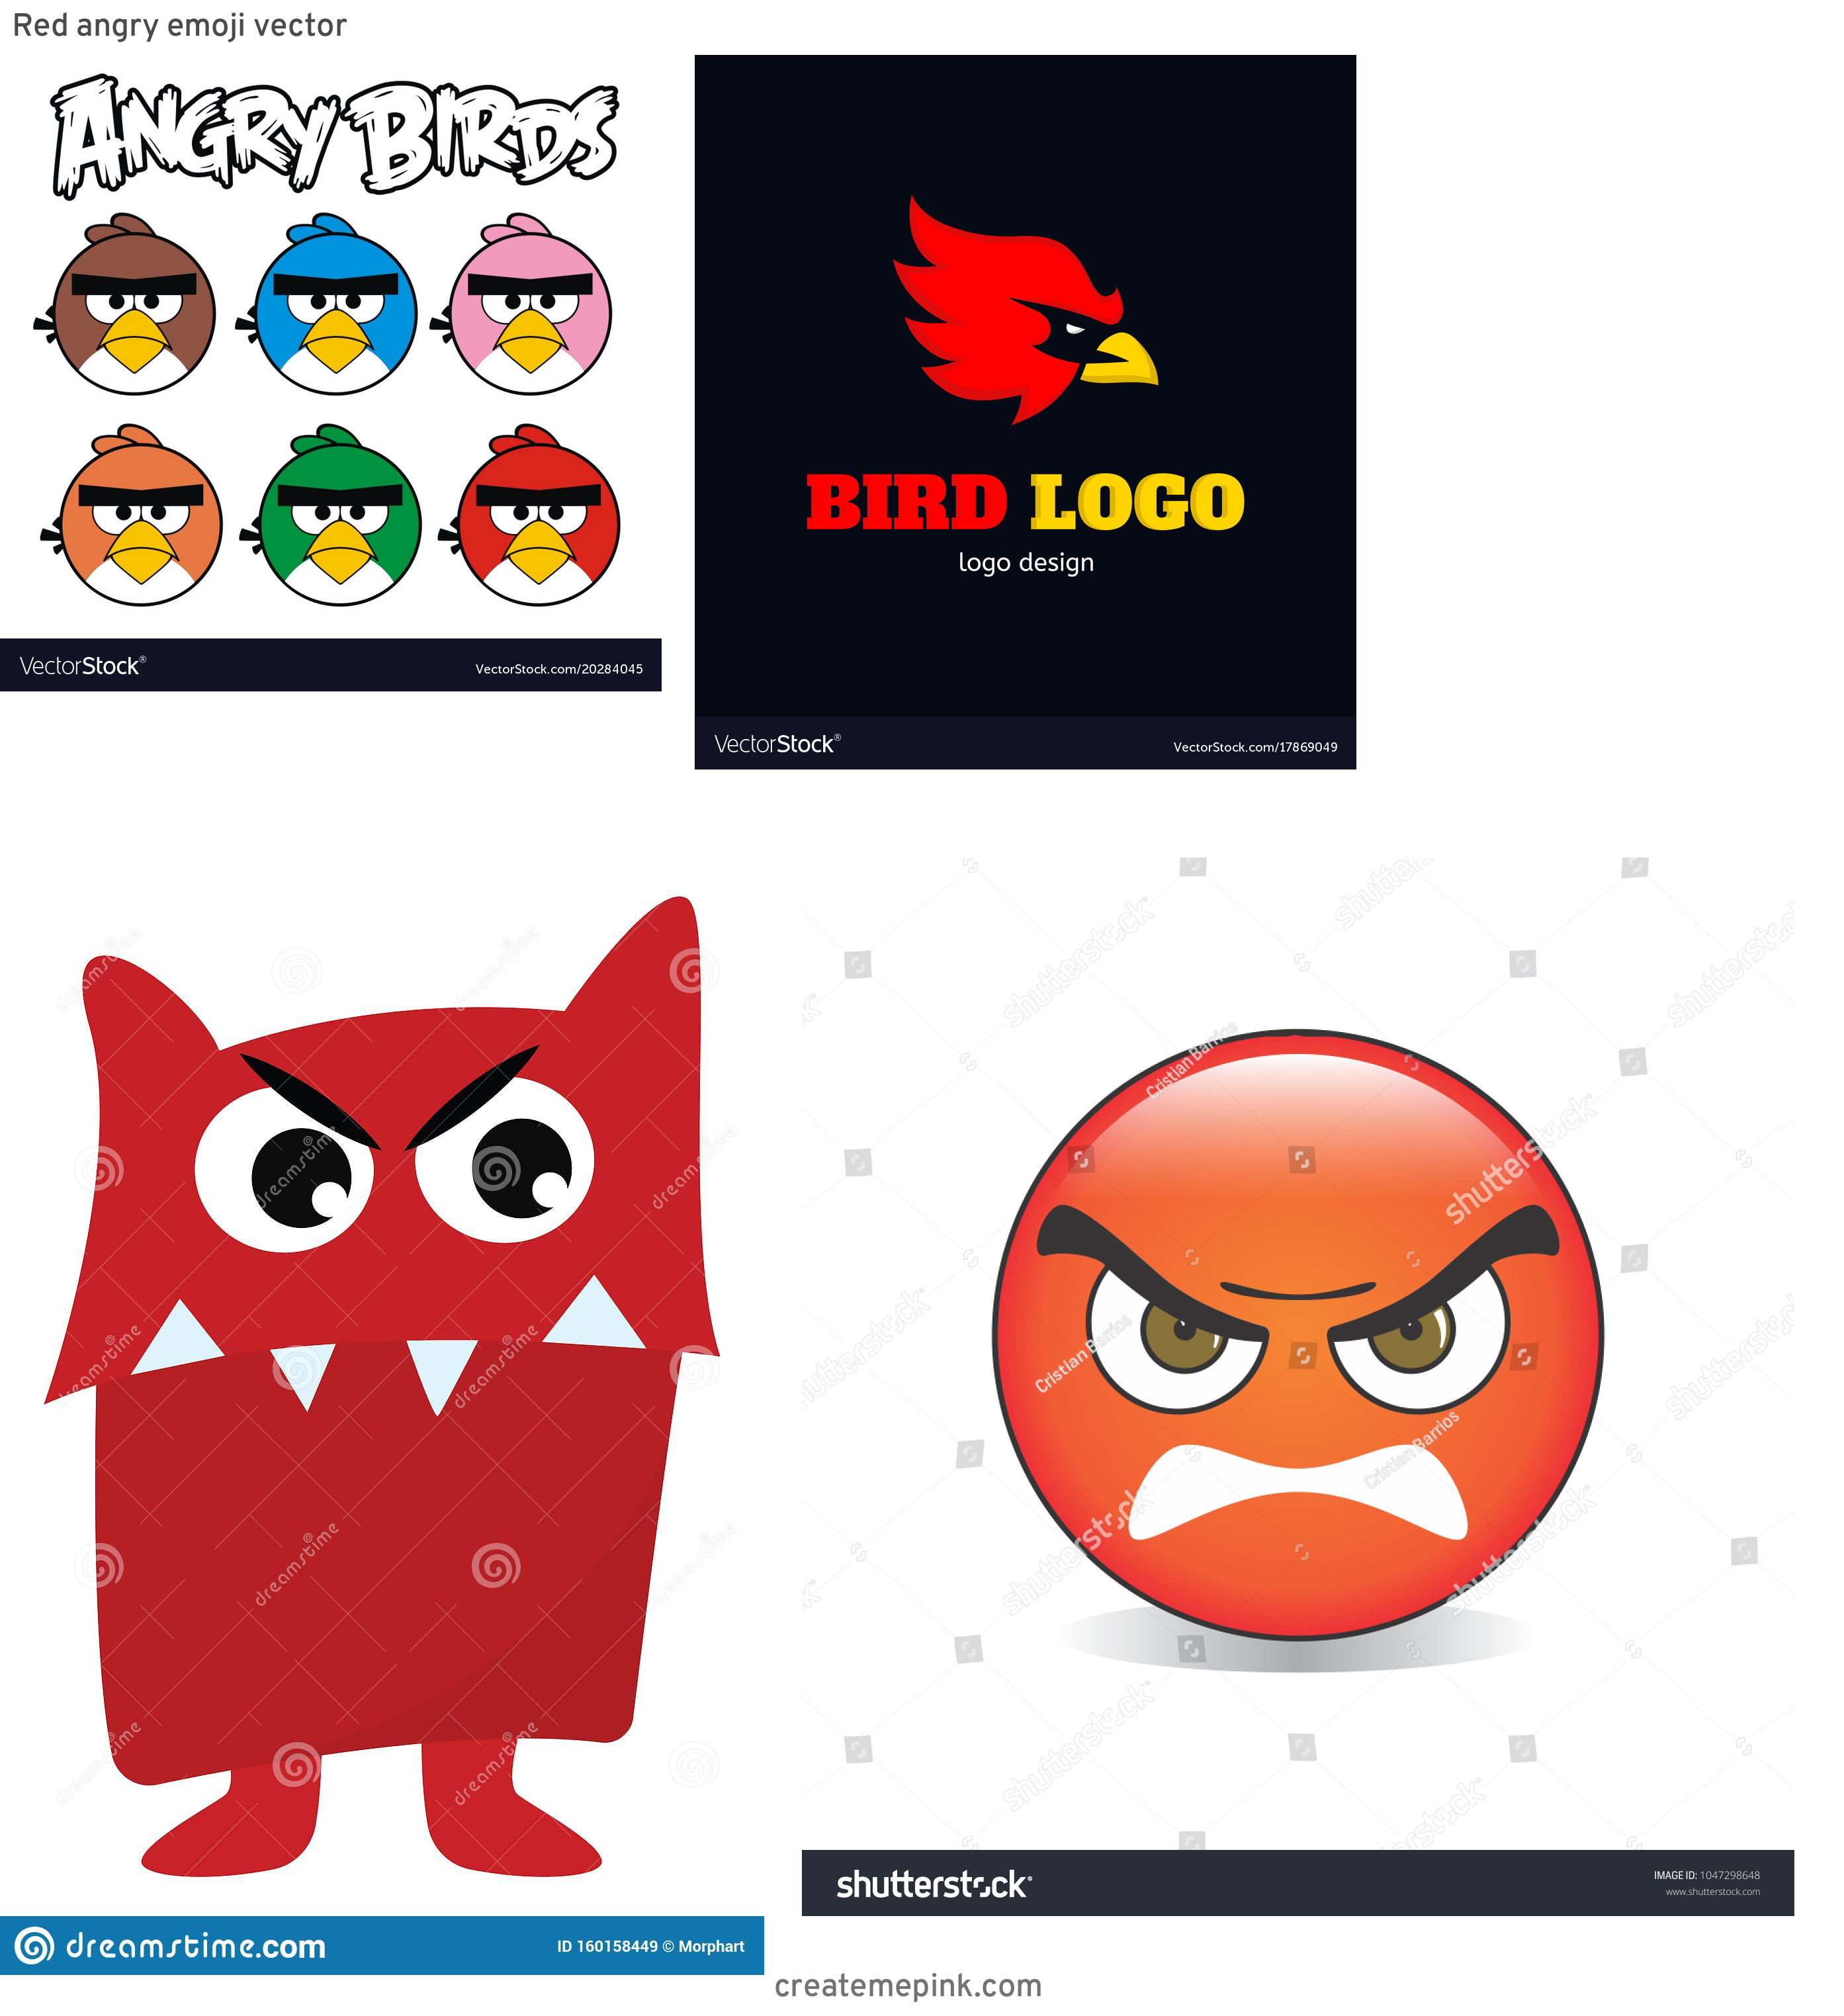 Red Angry Birds Vector: Red Angry Emoji Vector